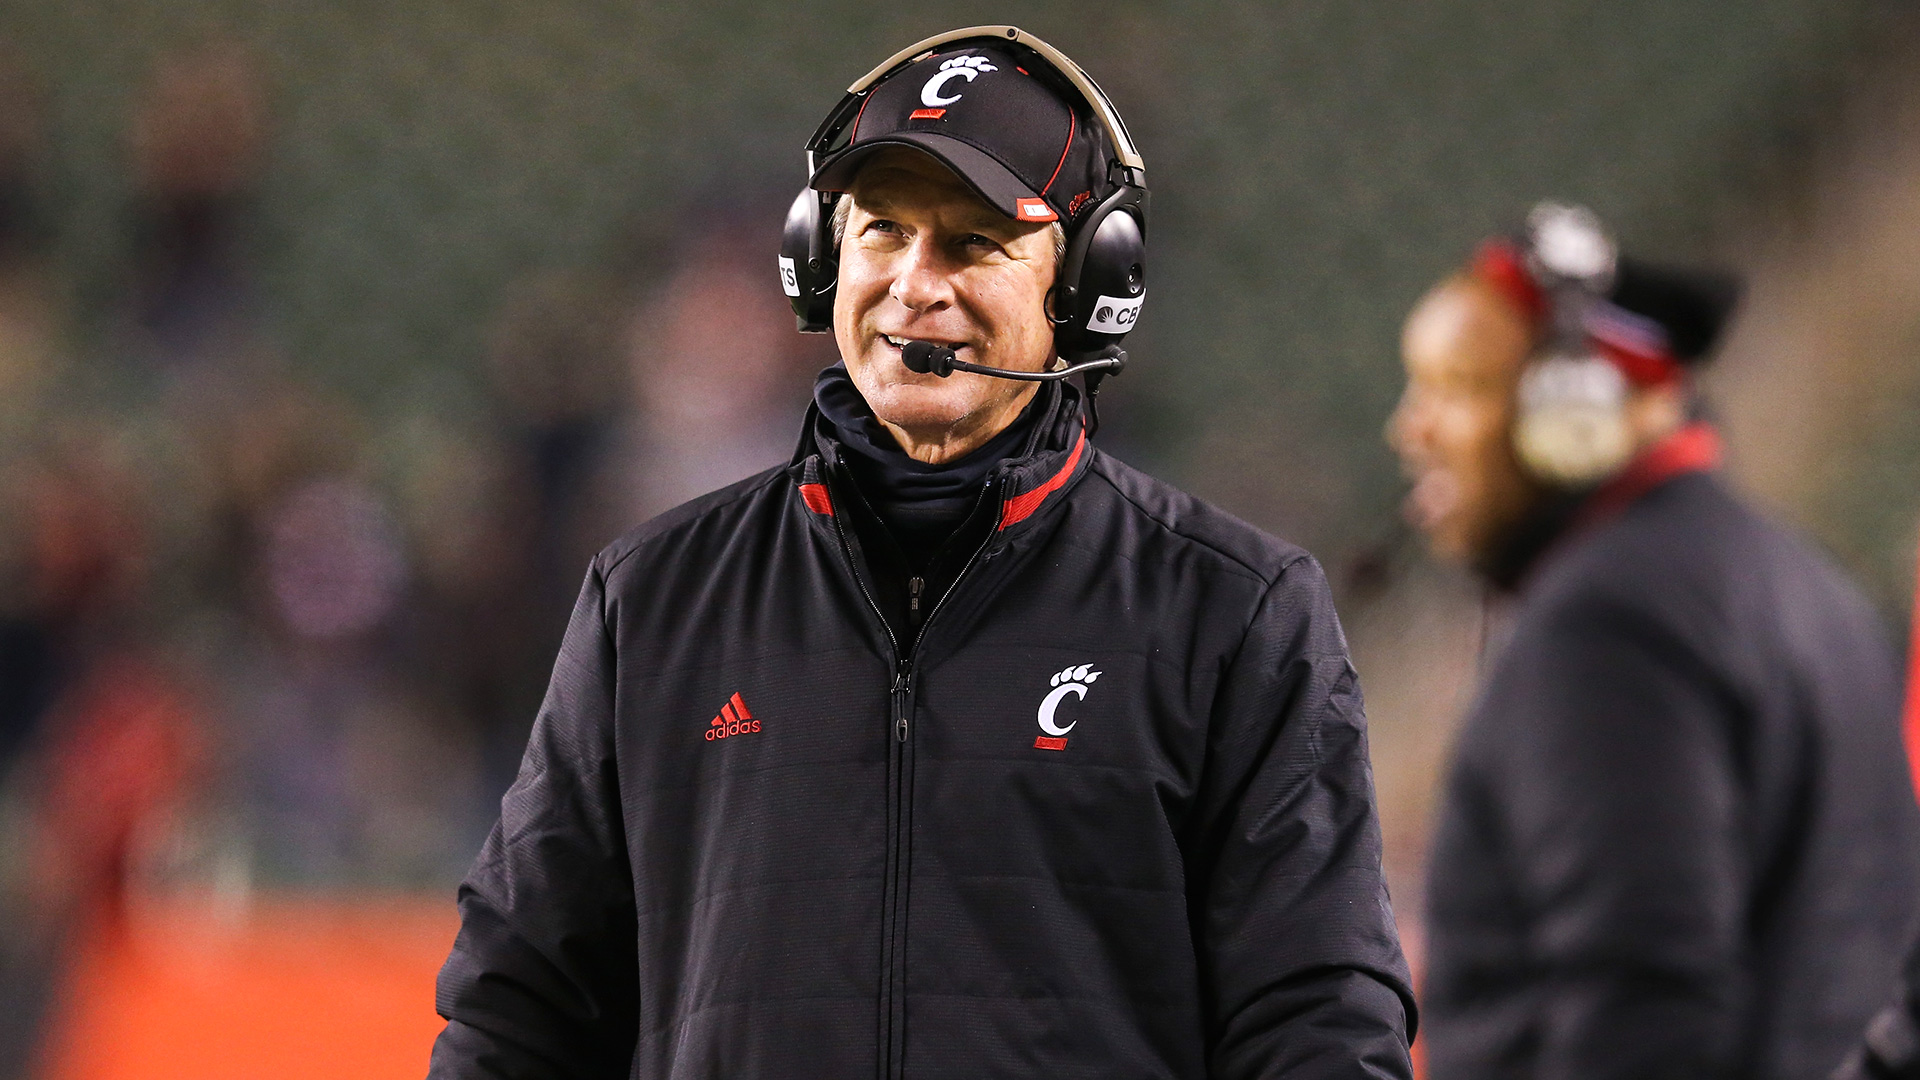 Tuberville on Big 12 expansion, title game: 'No reason not to do it'